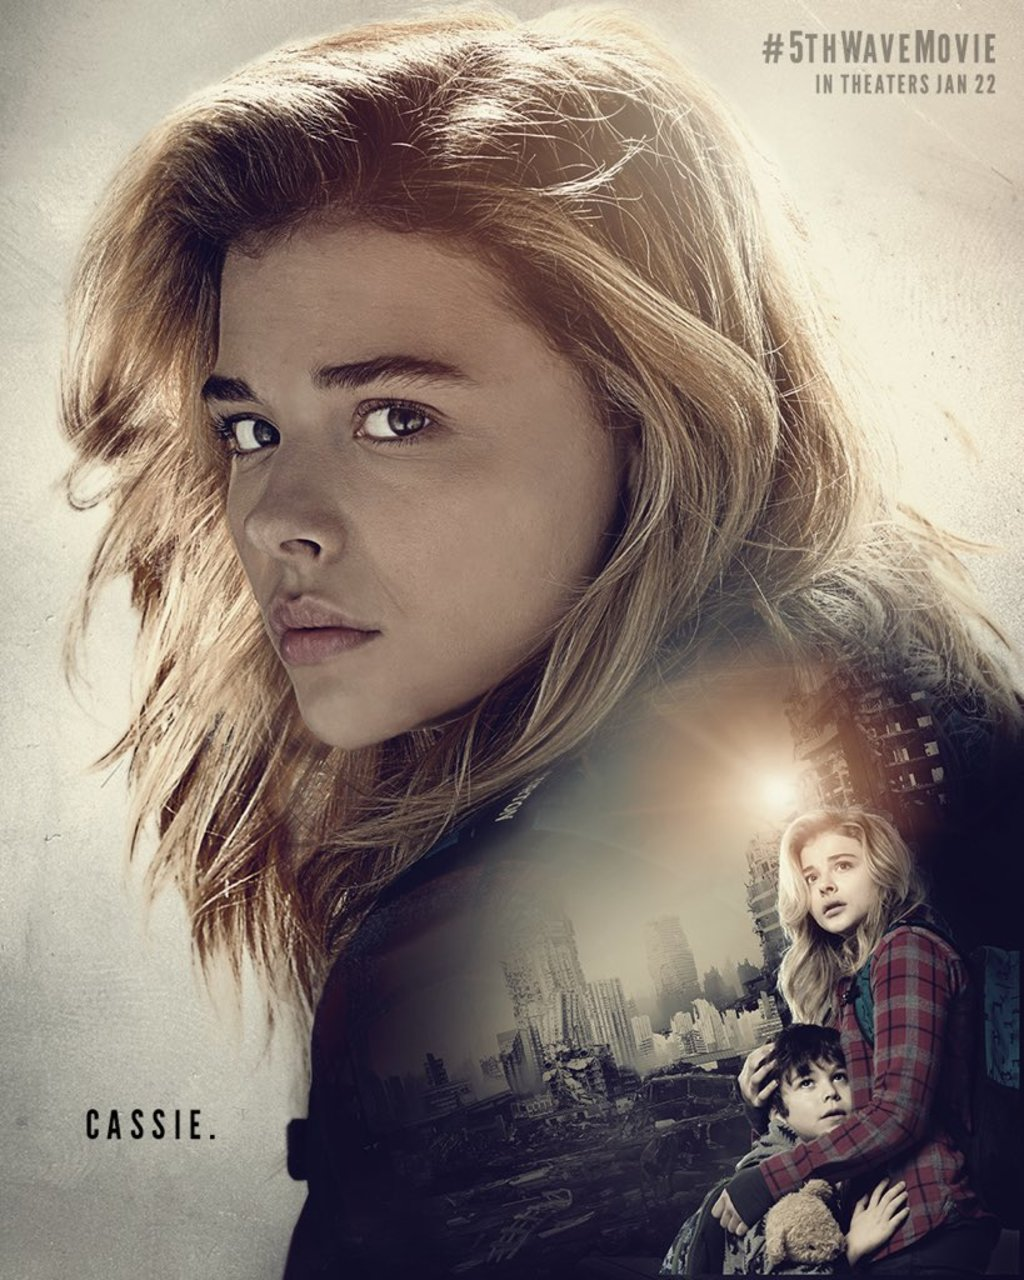 Watch The 5th Wave On Netflix Today!